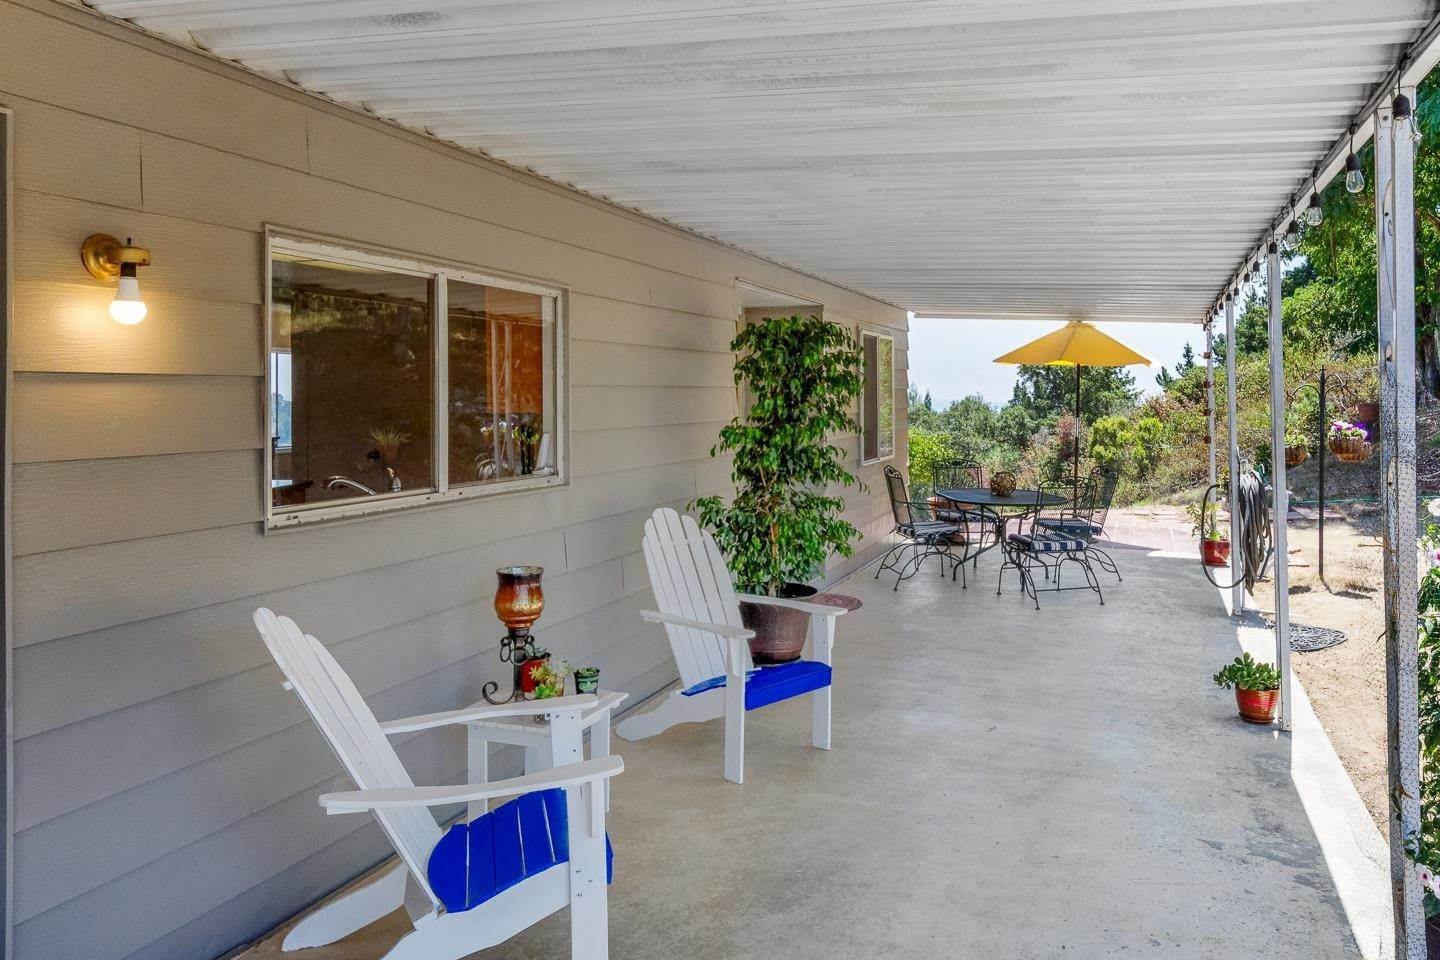 Other Residential Homes for Sale at 270 Hames RD 40 Corralitos, California 95076 United States